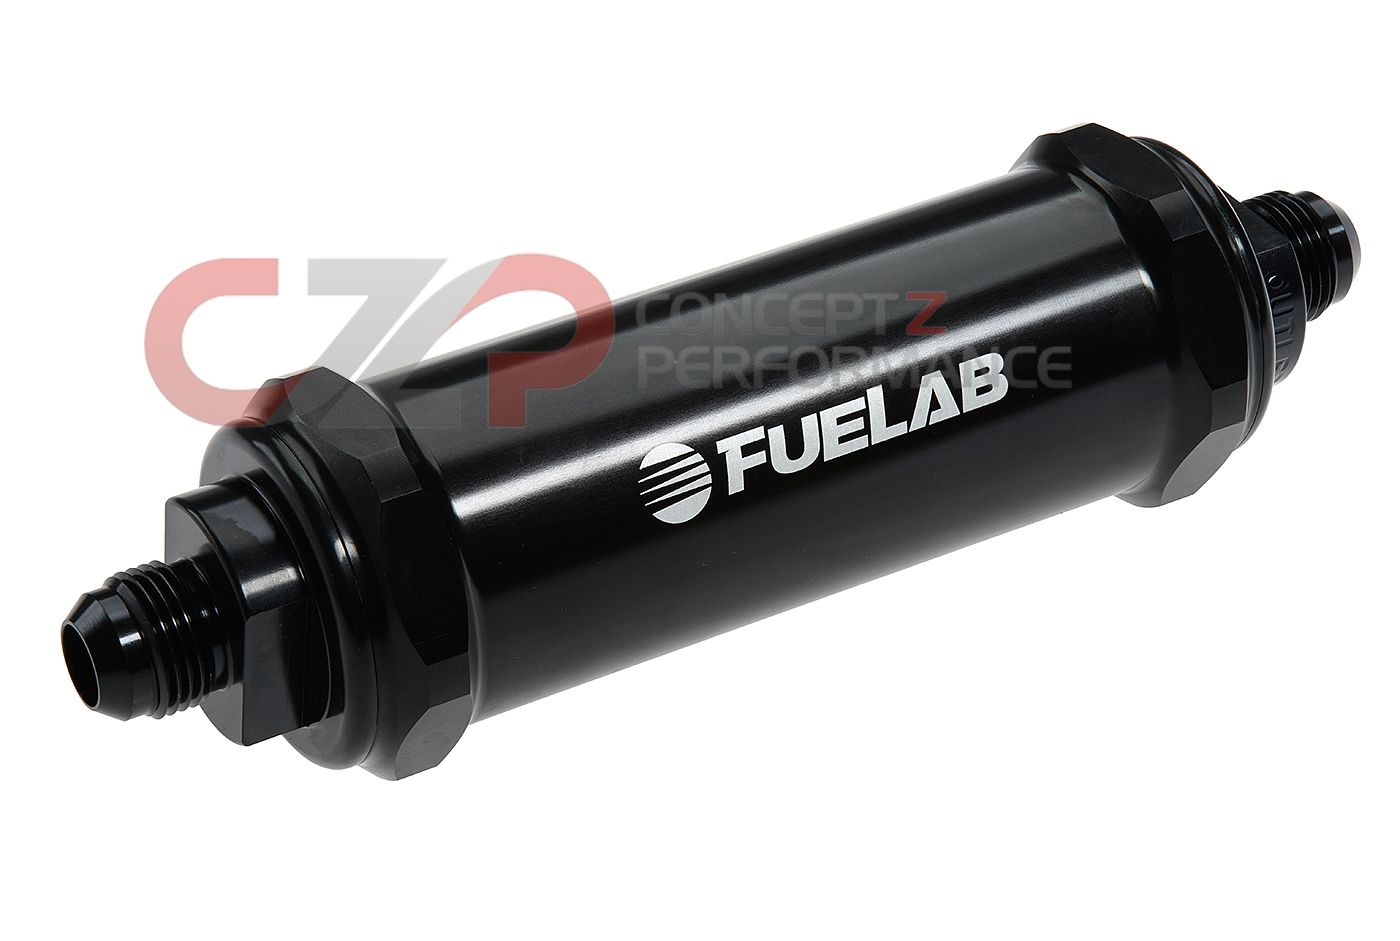 Fuel System Filters Concept Z Performance Nissan 300zx Filter Fuelab 828 Series 10 Micron Long Length In Line Black